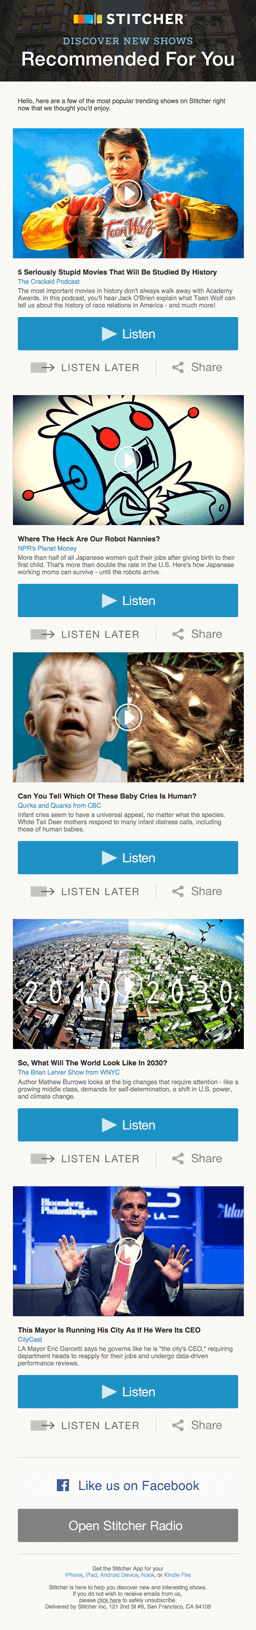 Email marketing campaign example by Stitcher showing 'Recommended for You' content